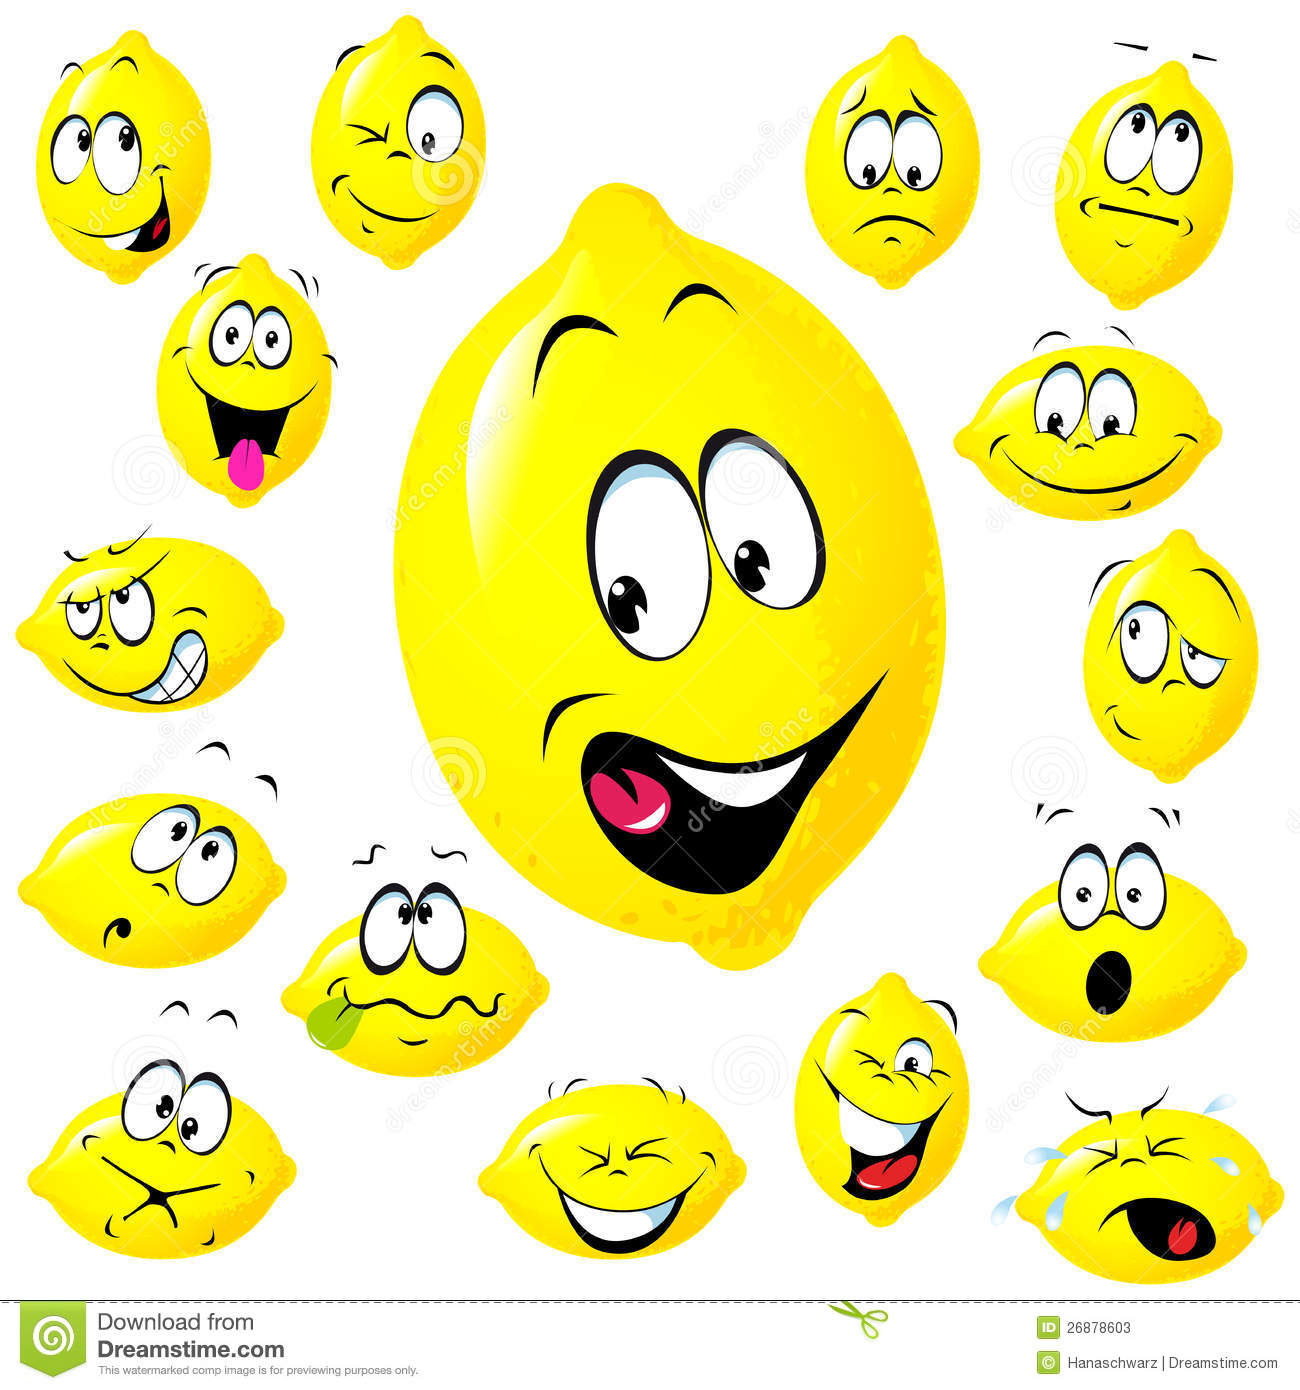 More similar stock images of ` Lemon cartoon `